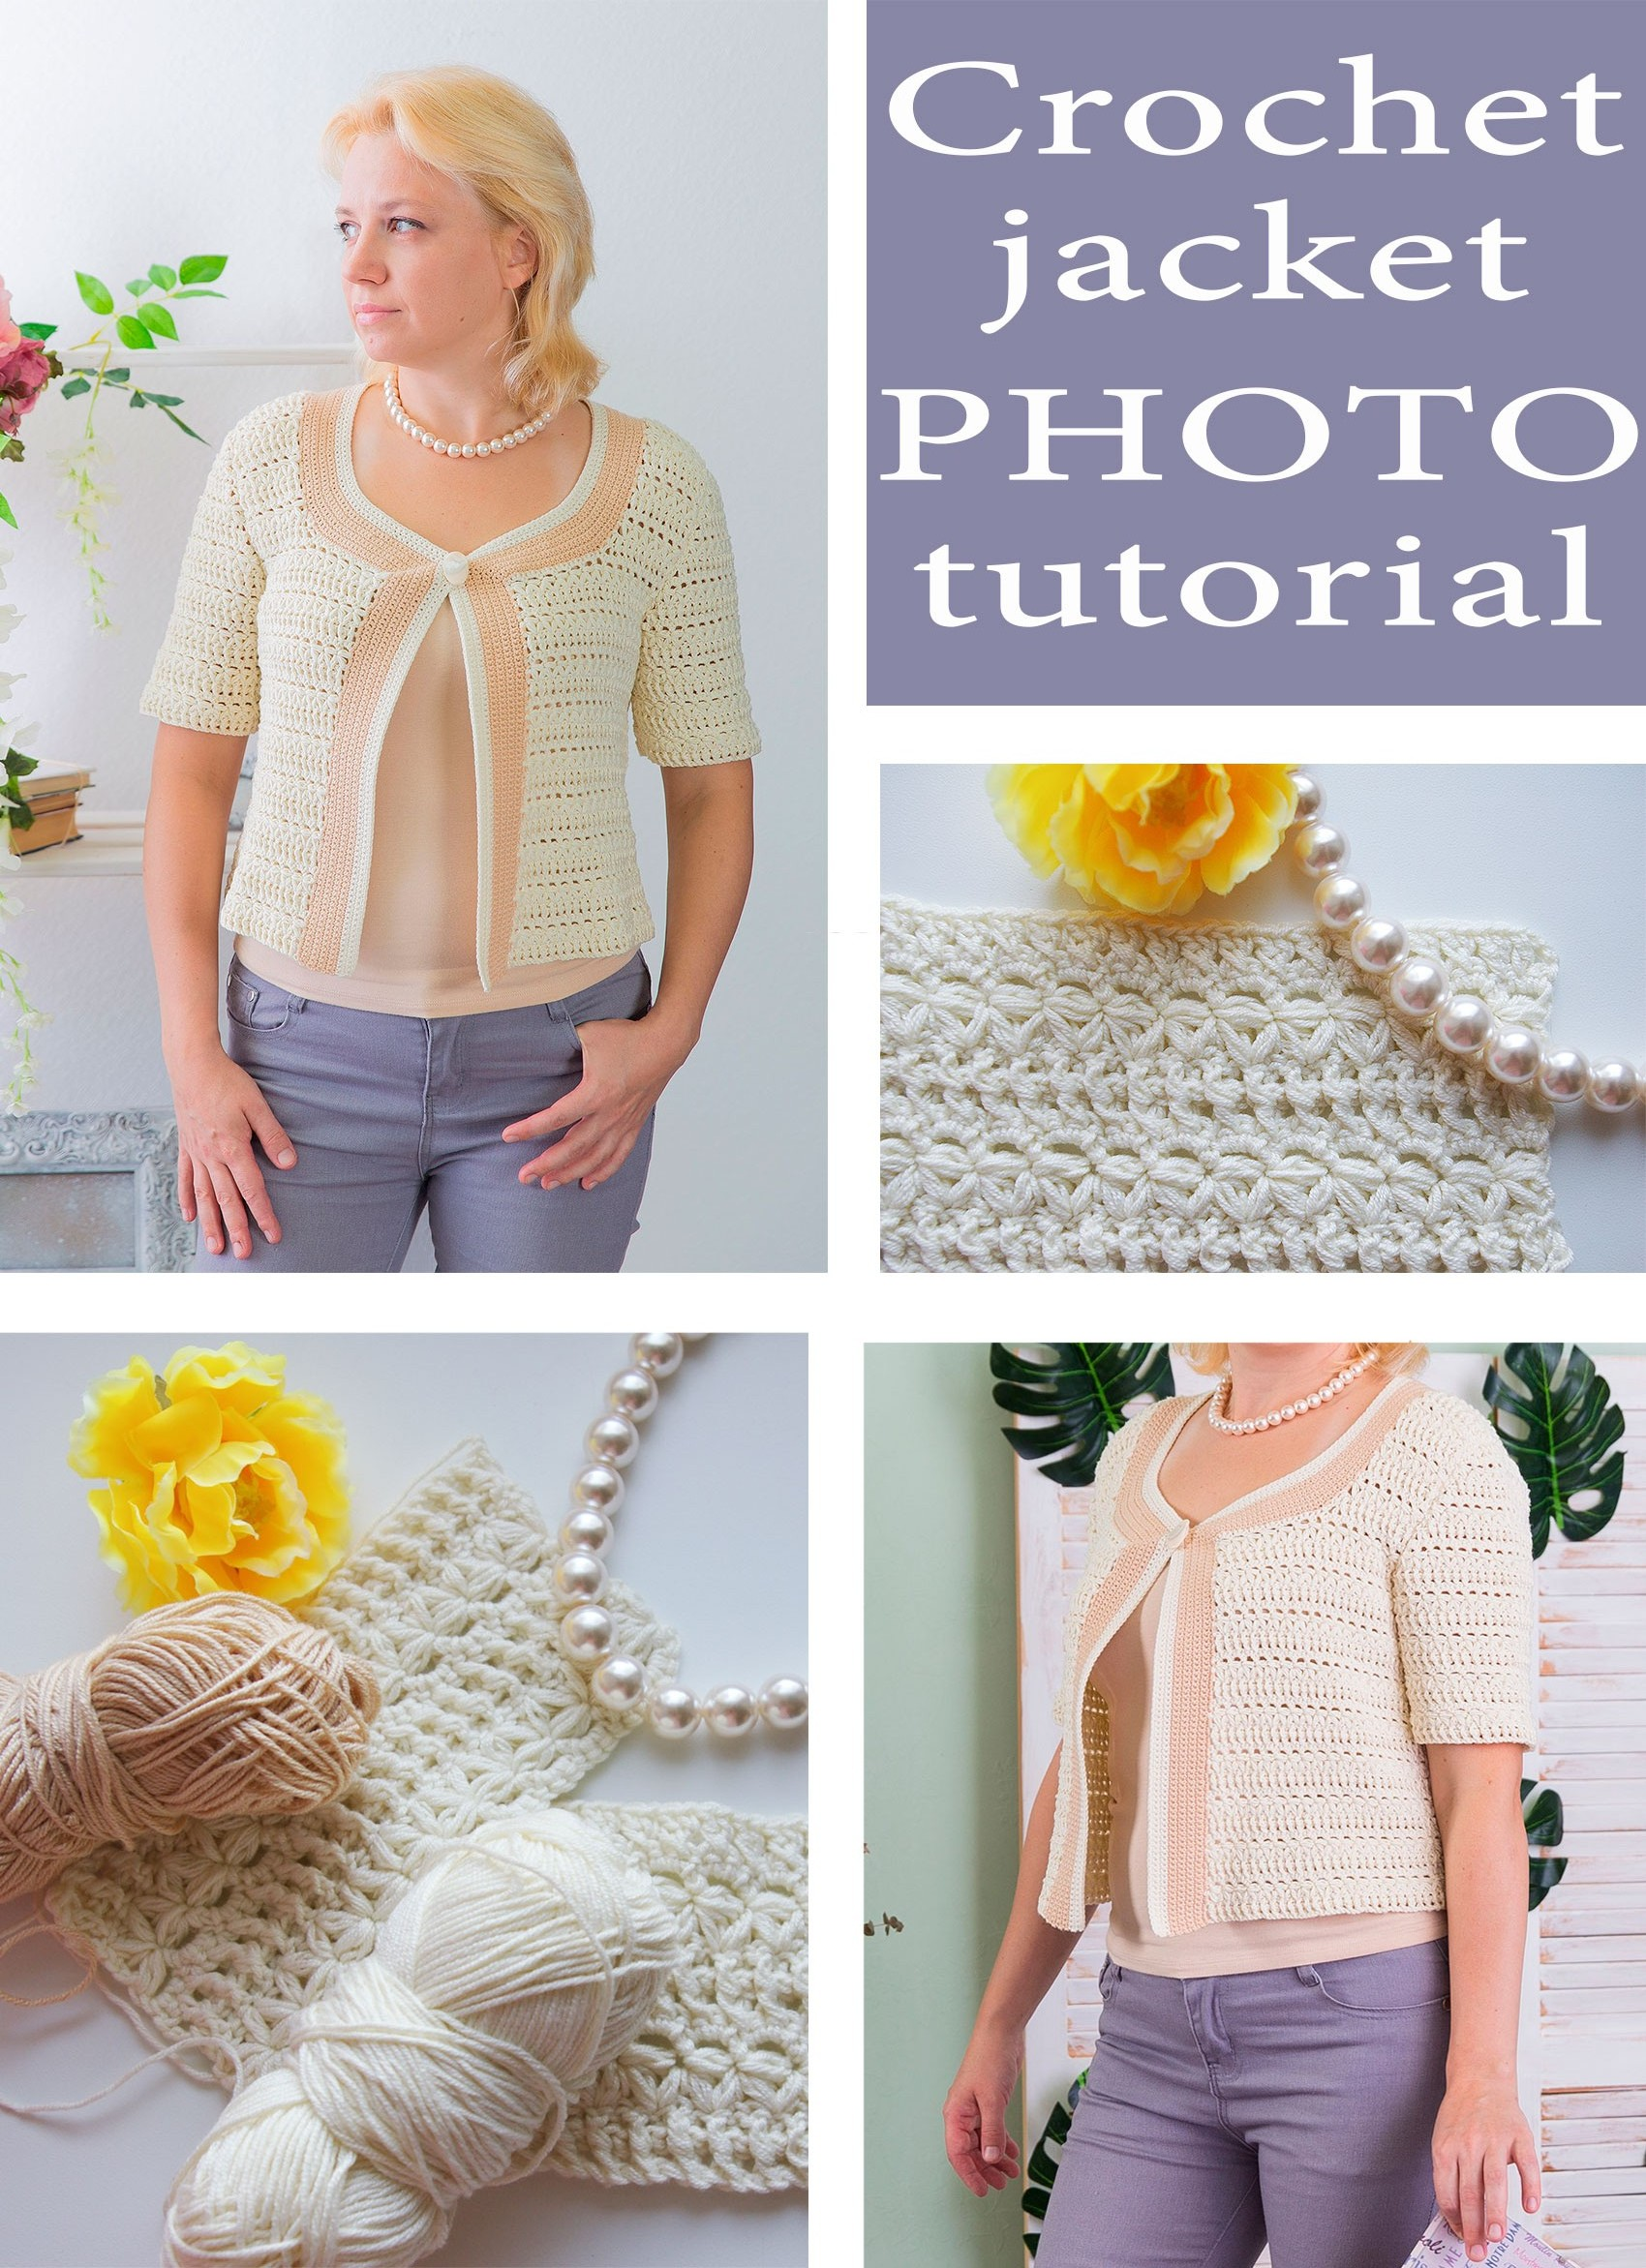 Summer crochet jacket pattern